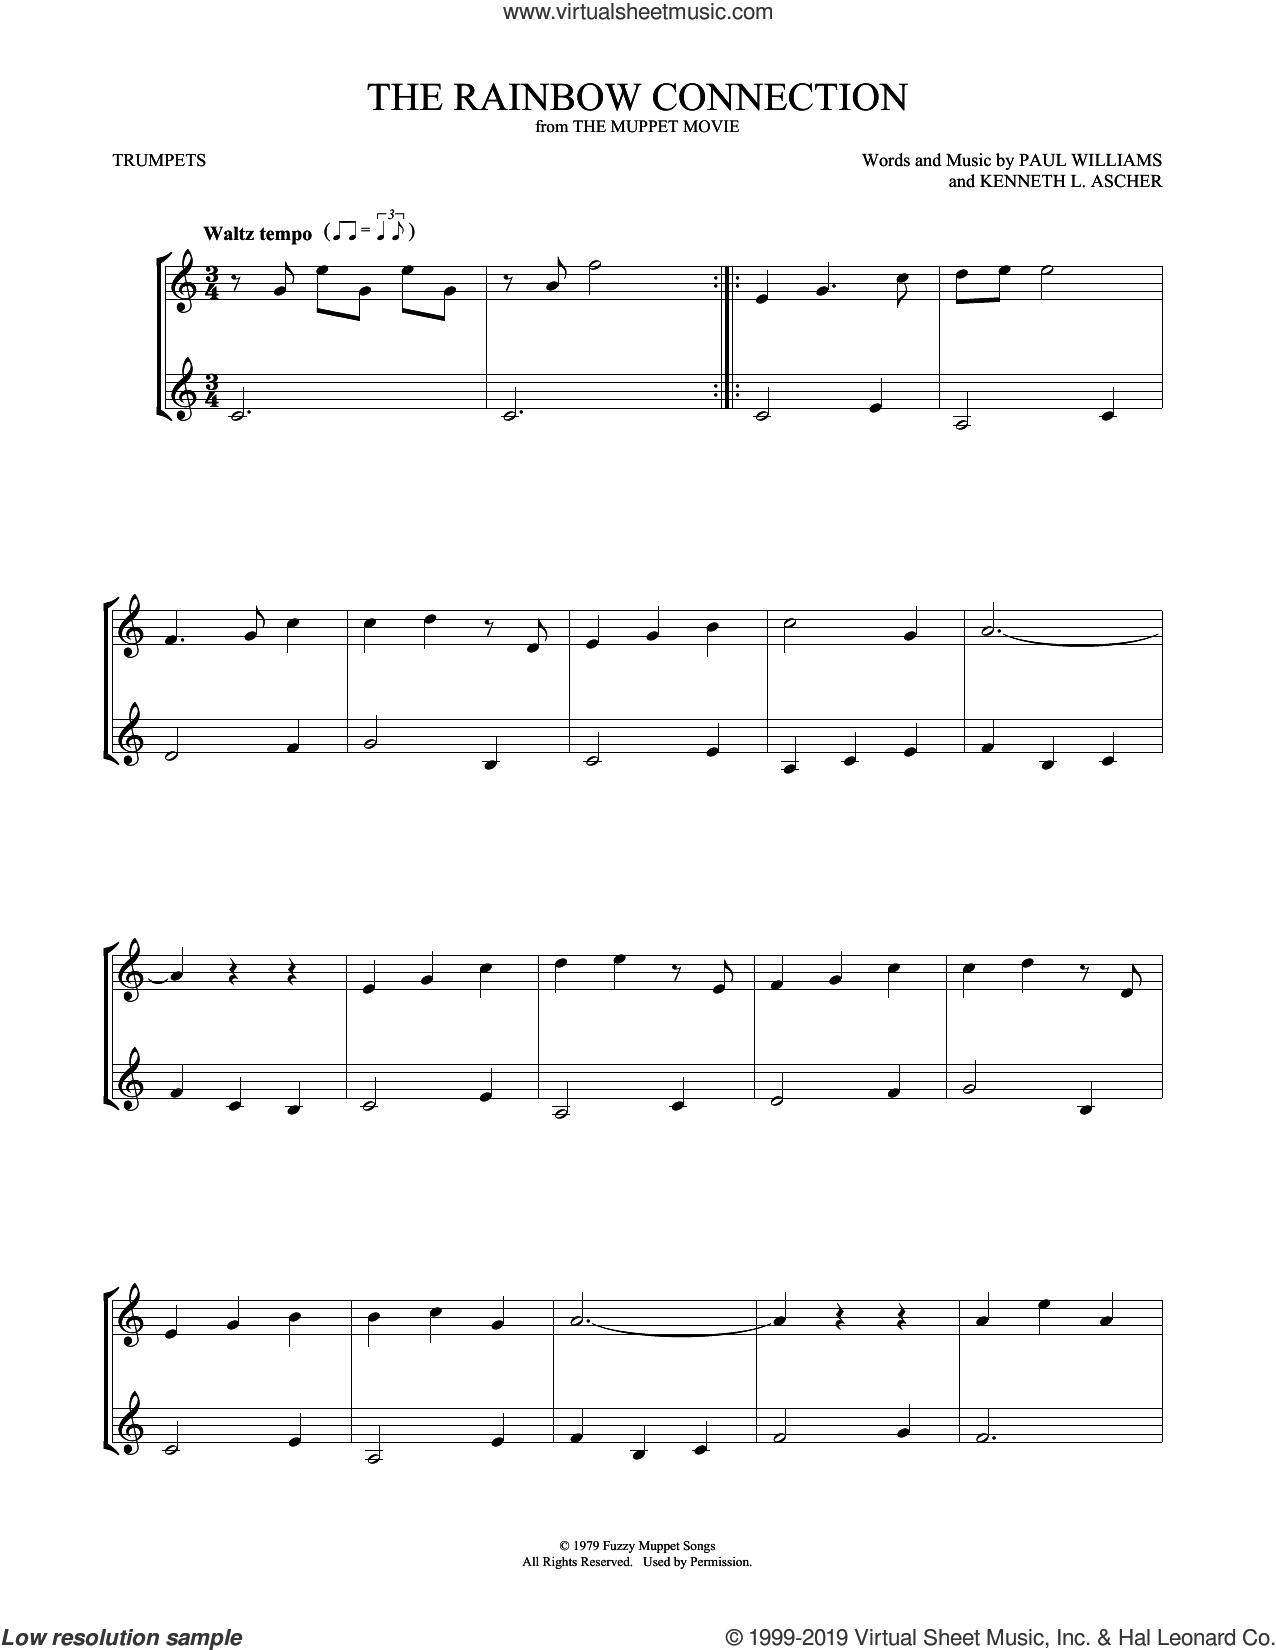 The Rainbow Connection sheet music for two trumpets (duet, duets) by Paul Williams and Kenneth L. Ascher, intermediate skill level